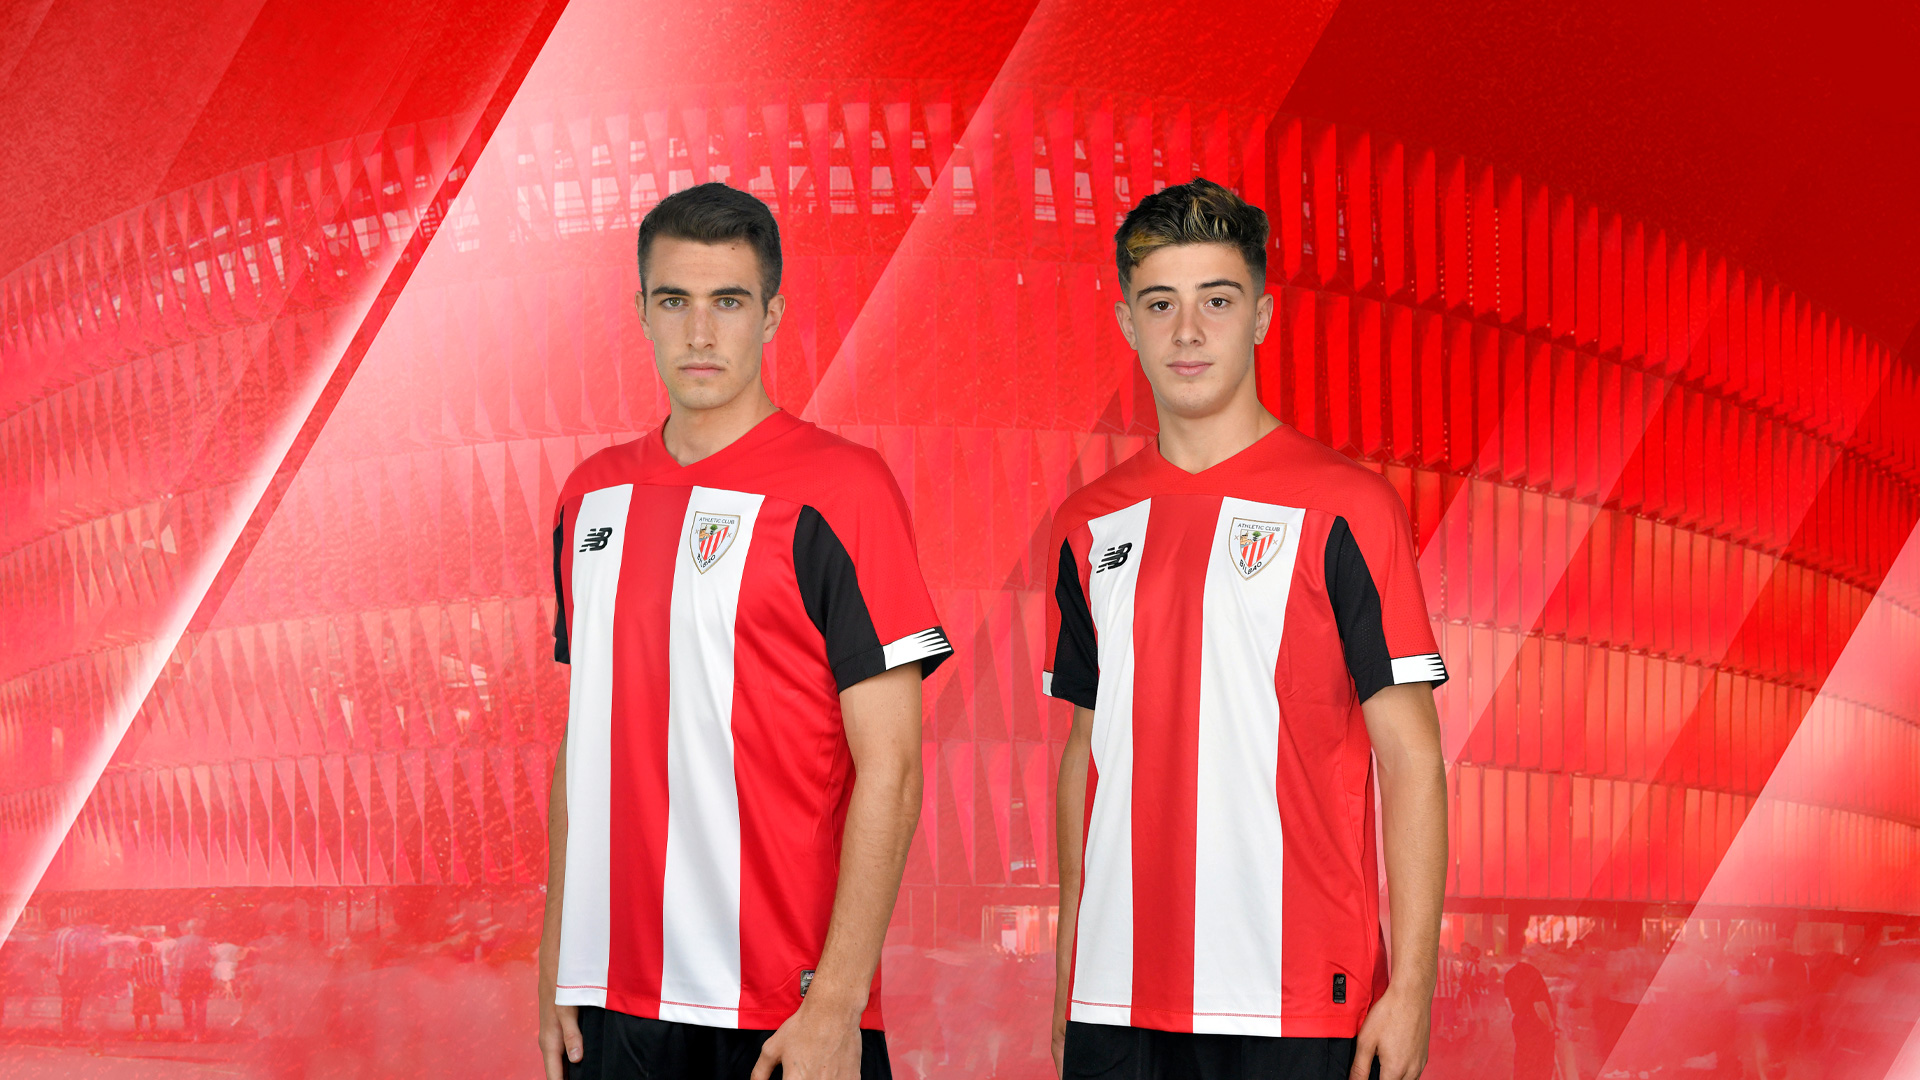 Serrano and Urain join pre-season with the first team